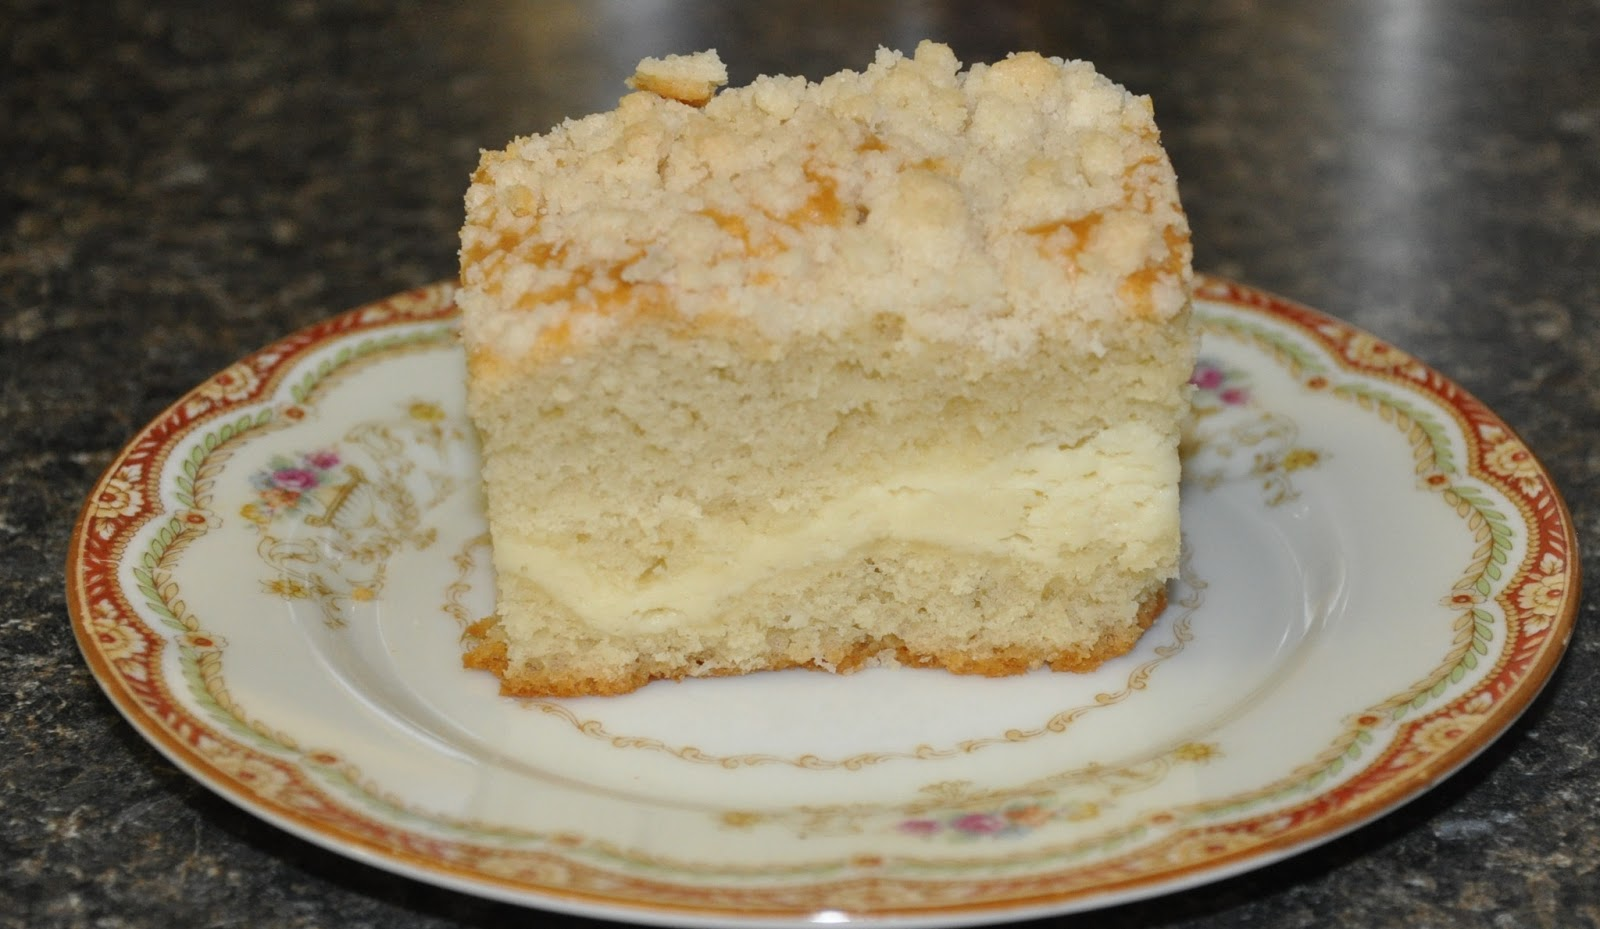 Cream Cheese Coffee Cake with Crumble Topping